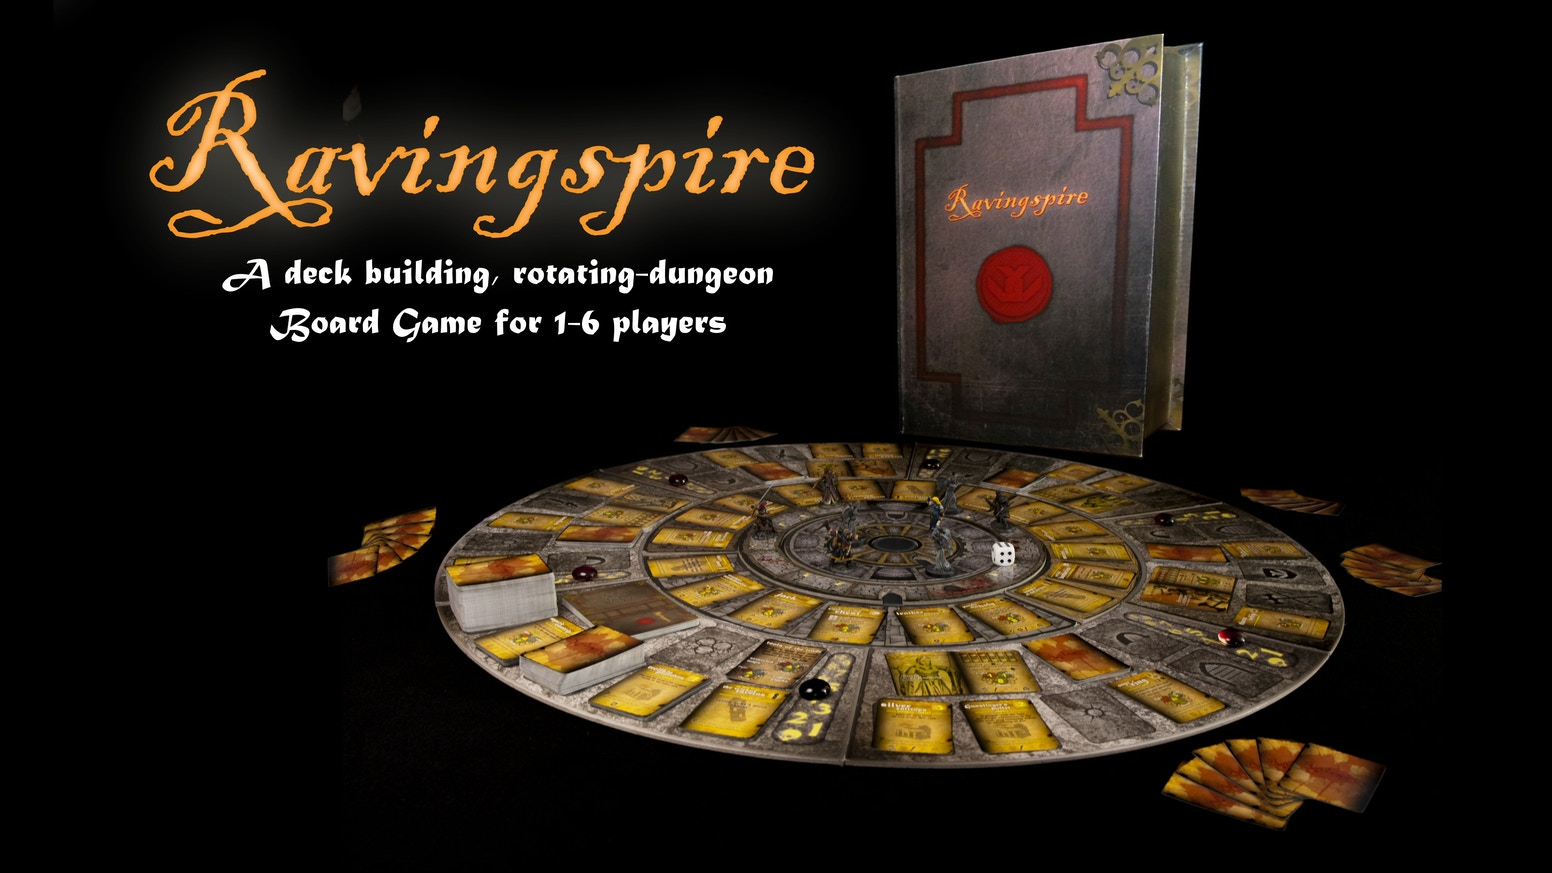 Ravingspire: A deck-building, rotating-dungeon boardgame of Swords, Sorcery and Madness. For 1-6 Players. Watch tutorial and gameplay videos on www.ravingspire.com